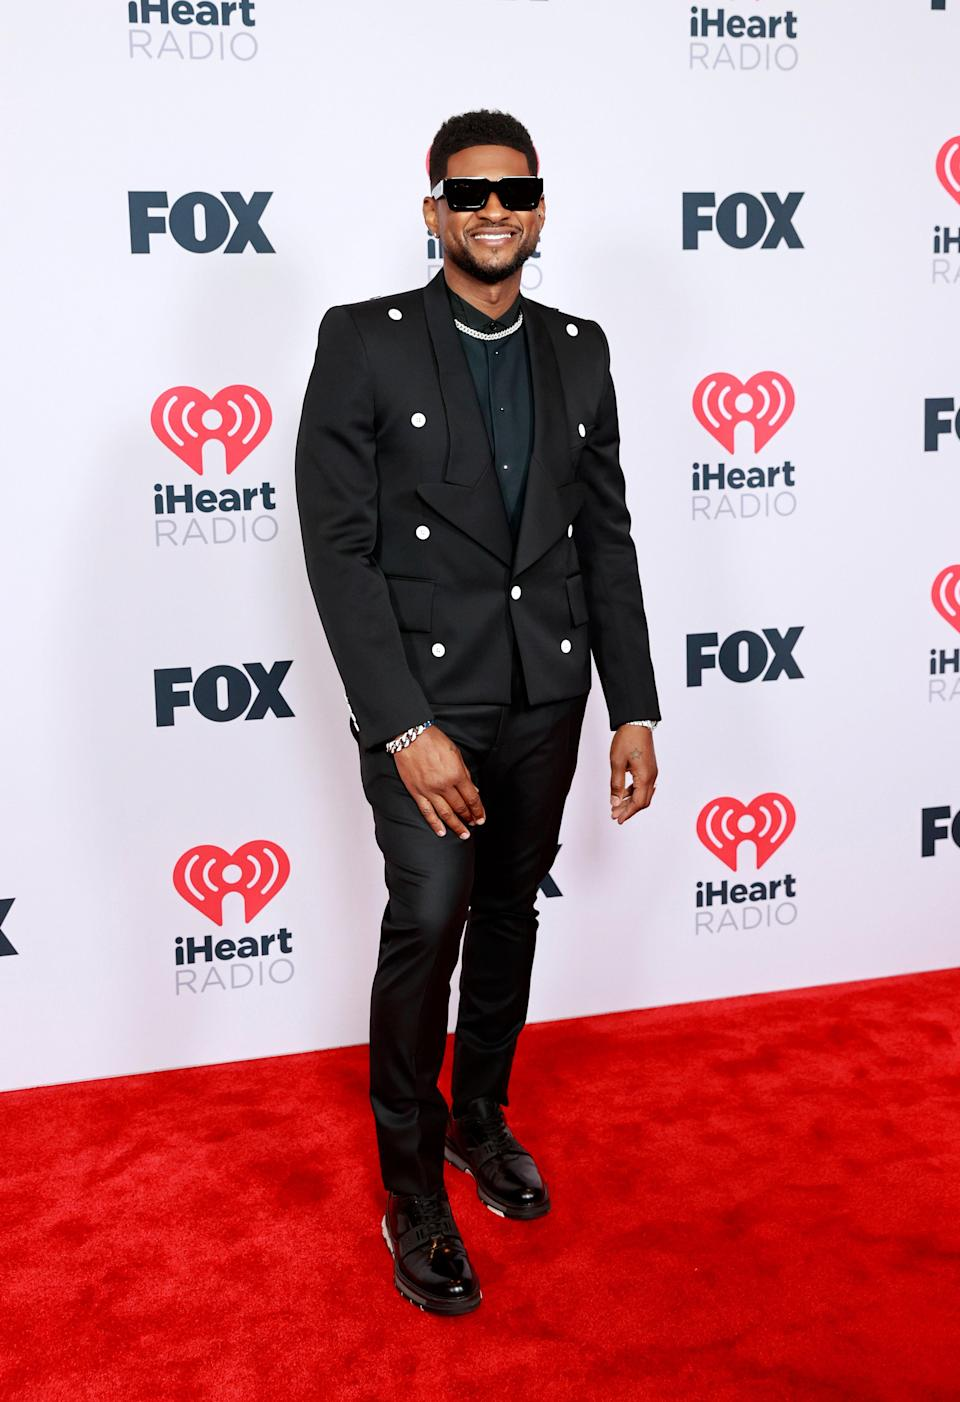 As host for the night, Usher looked sharp as ever in a black suit with a deep green shirt. The shades are the perfect pairing for a super sleek look.